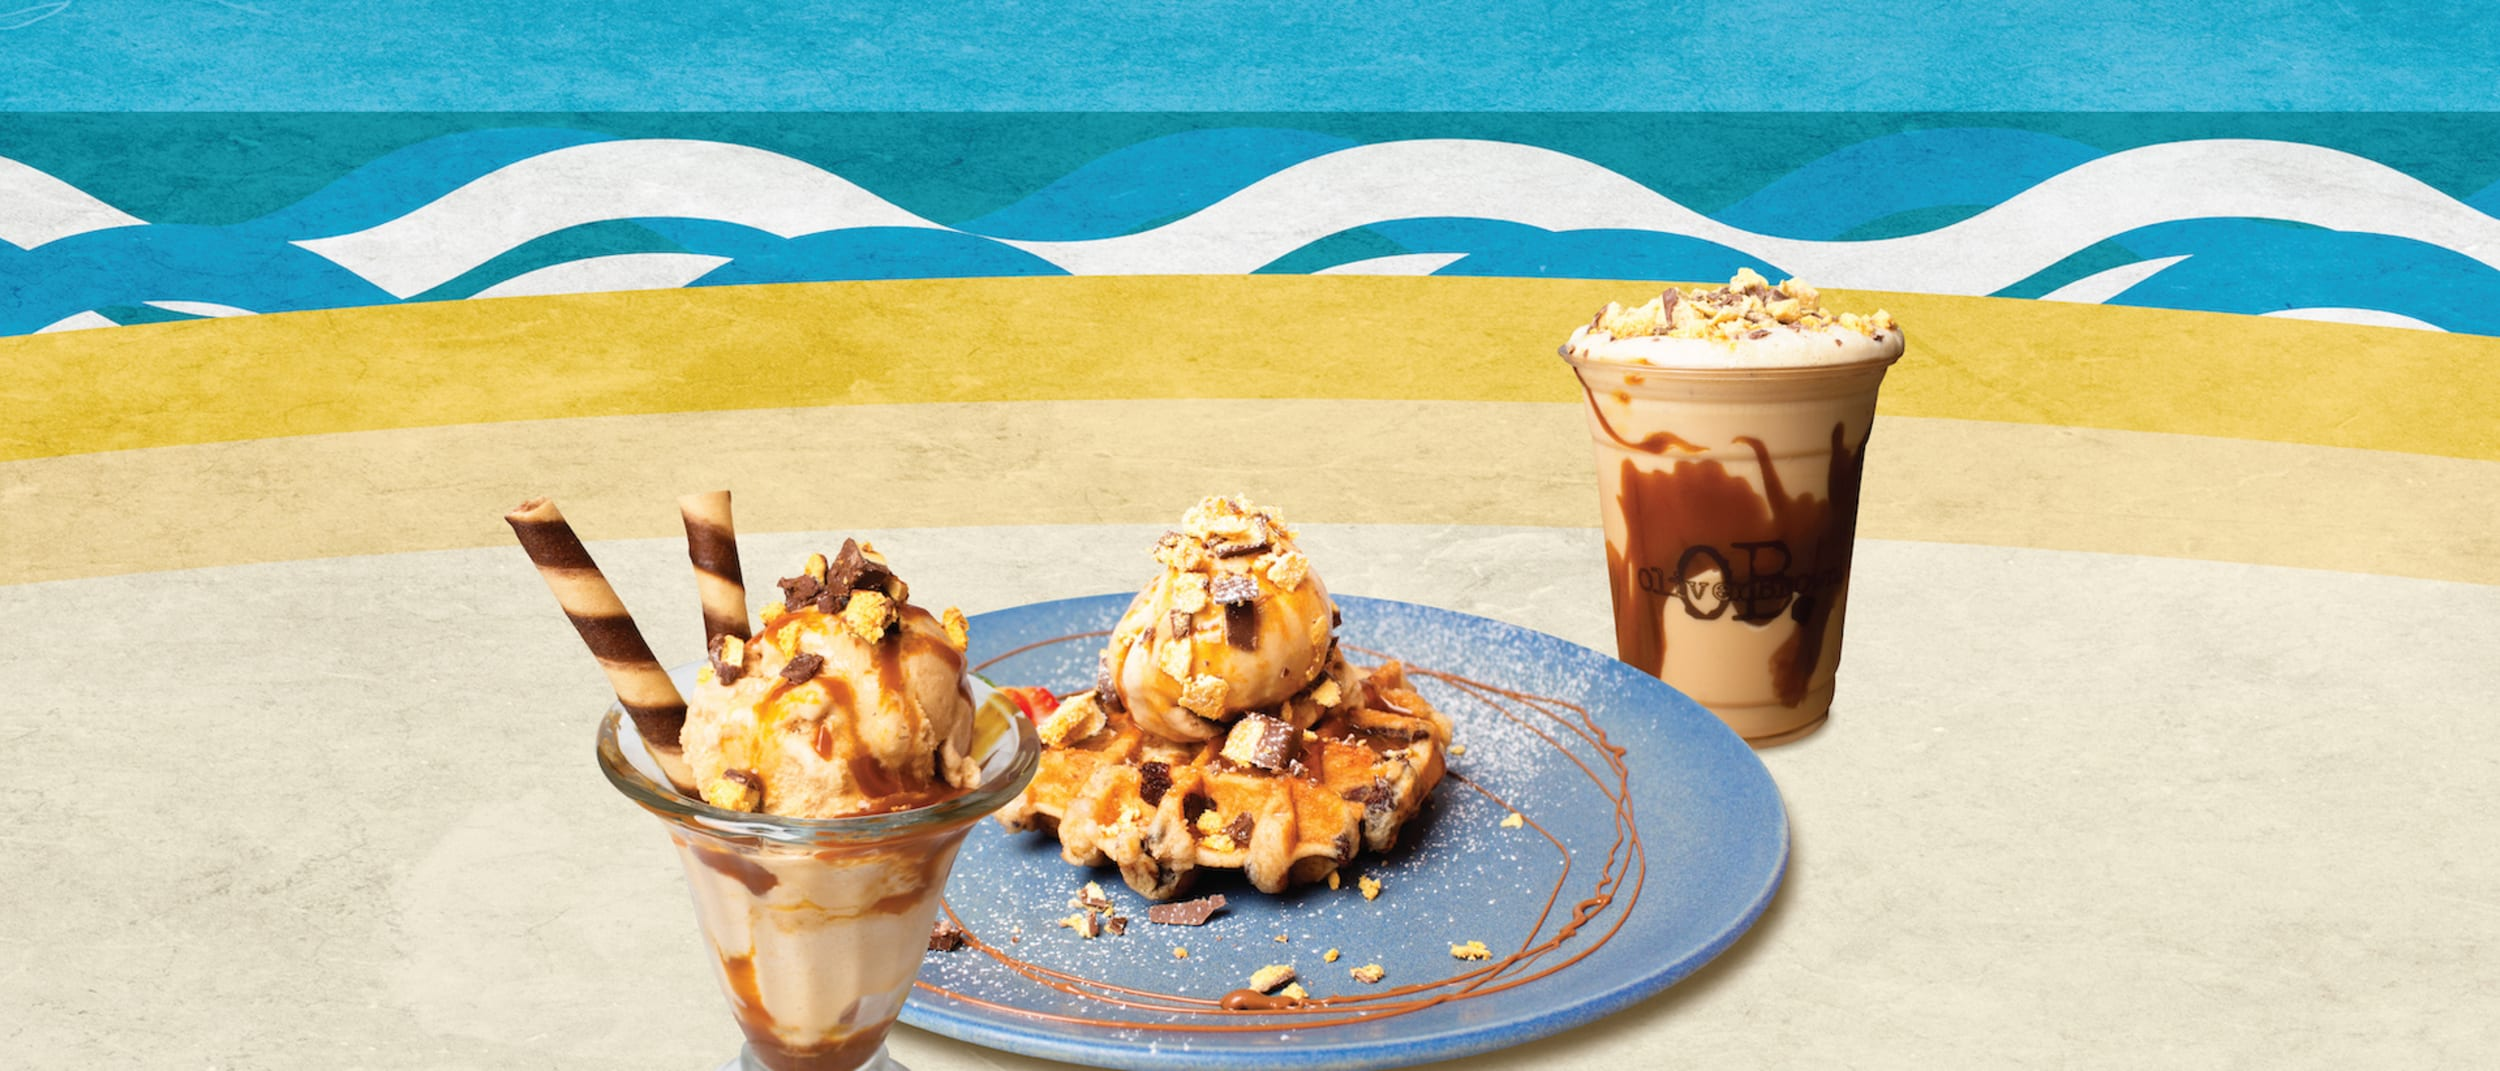 The Taste of Summer: Salted Caramel